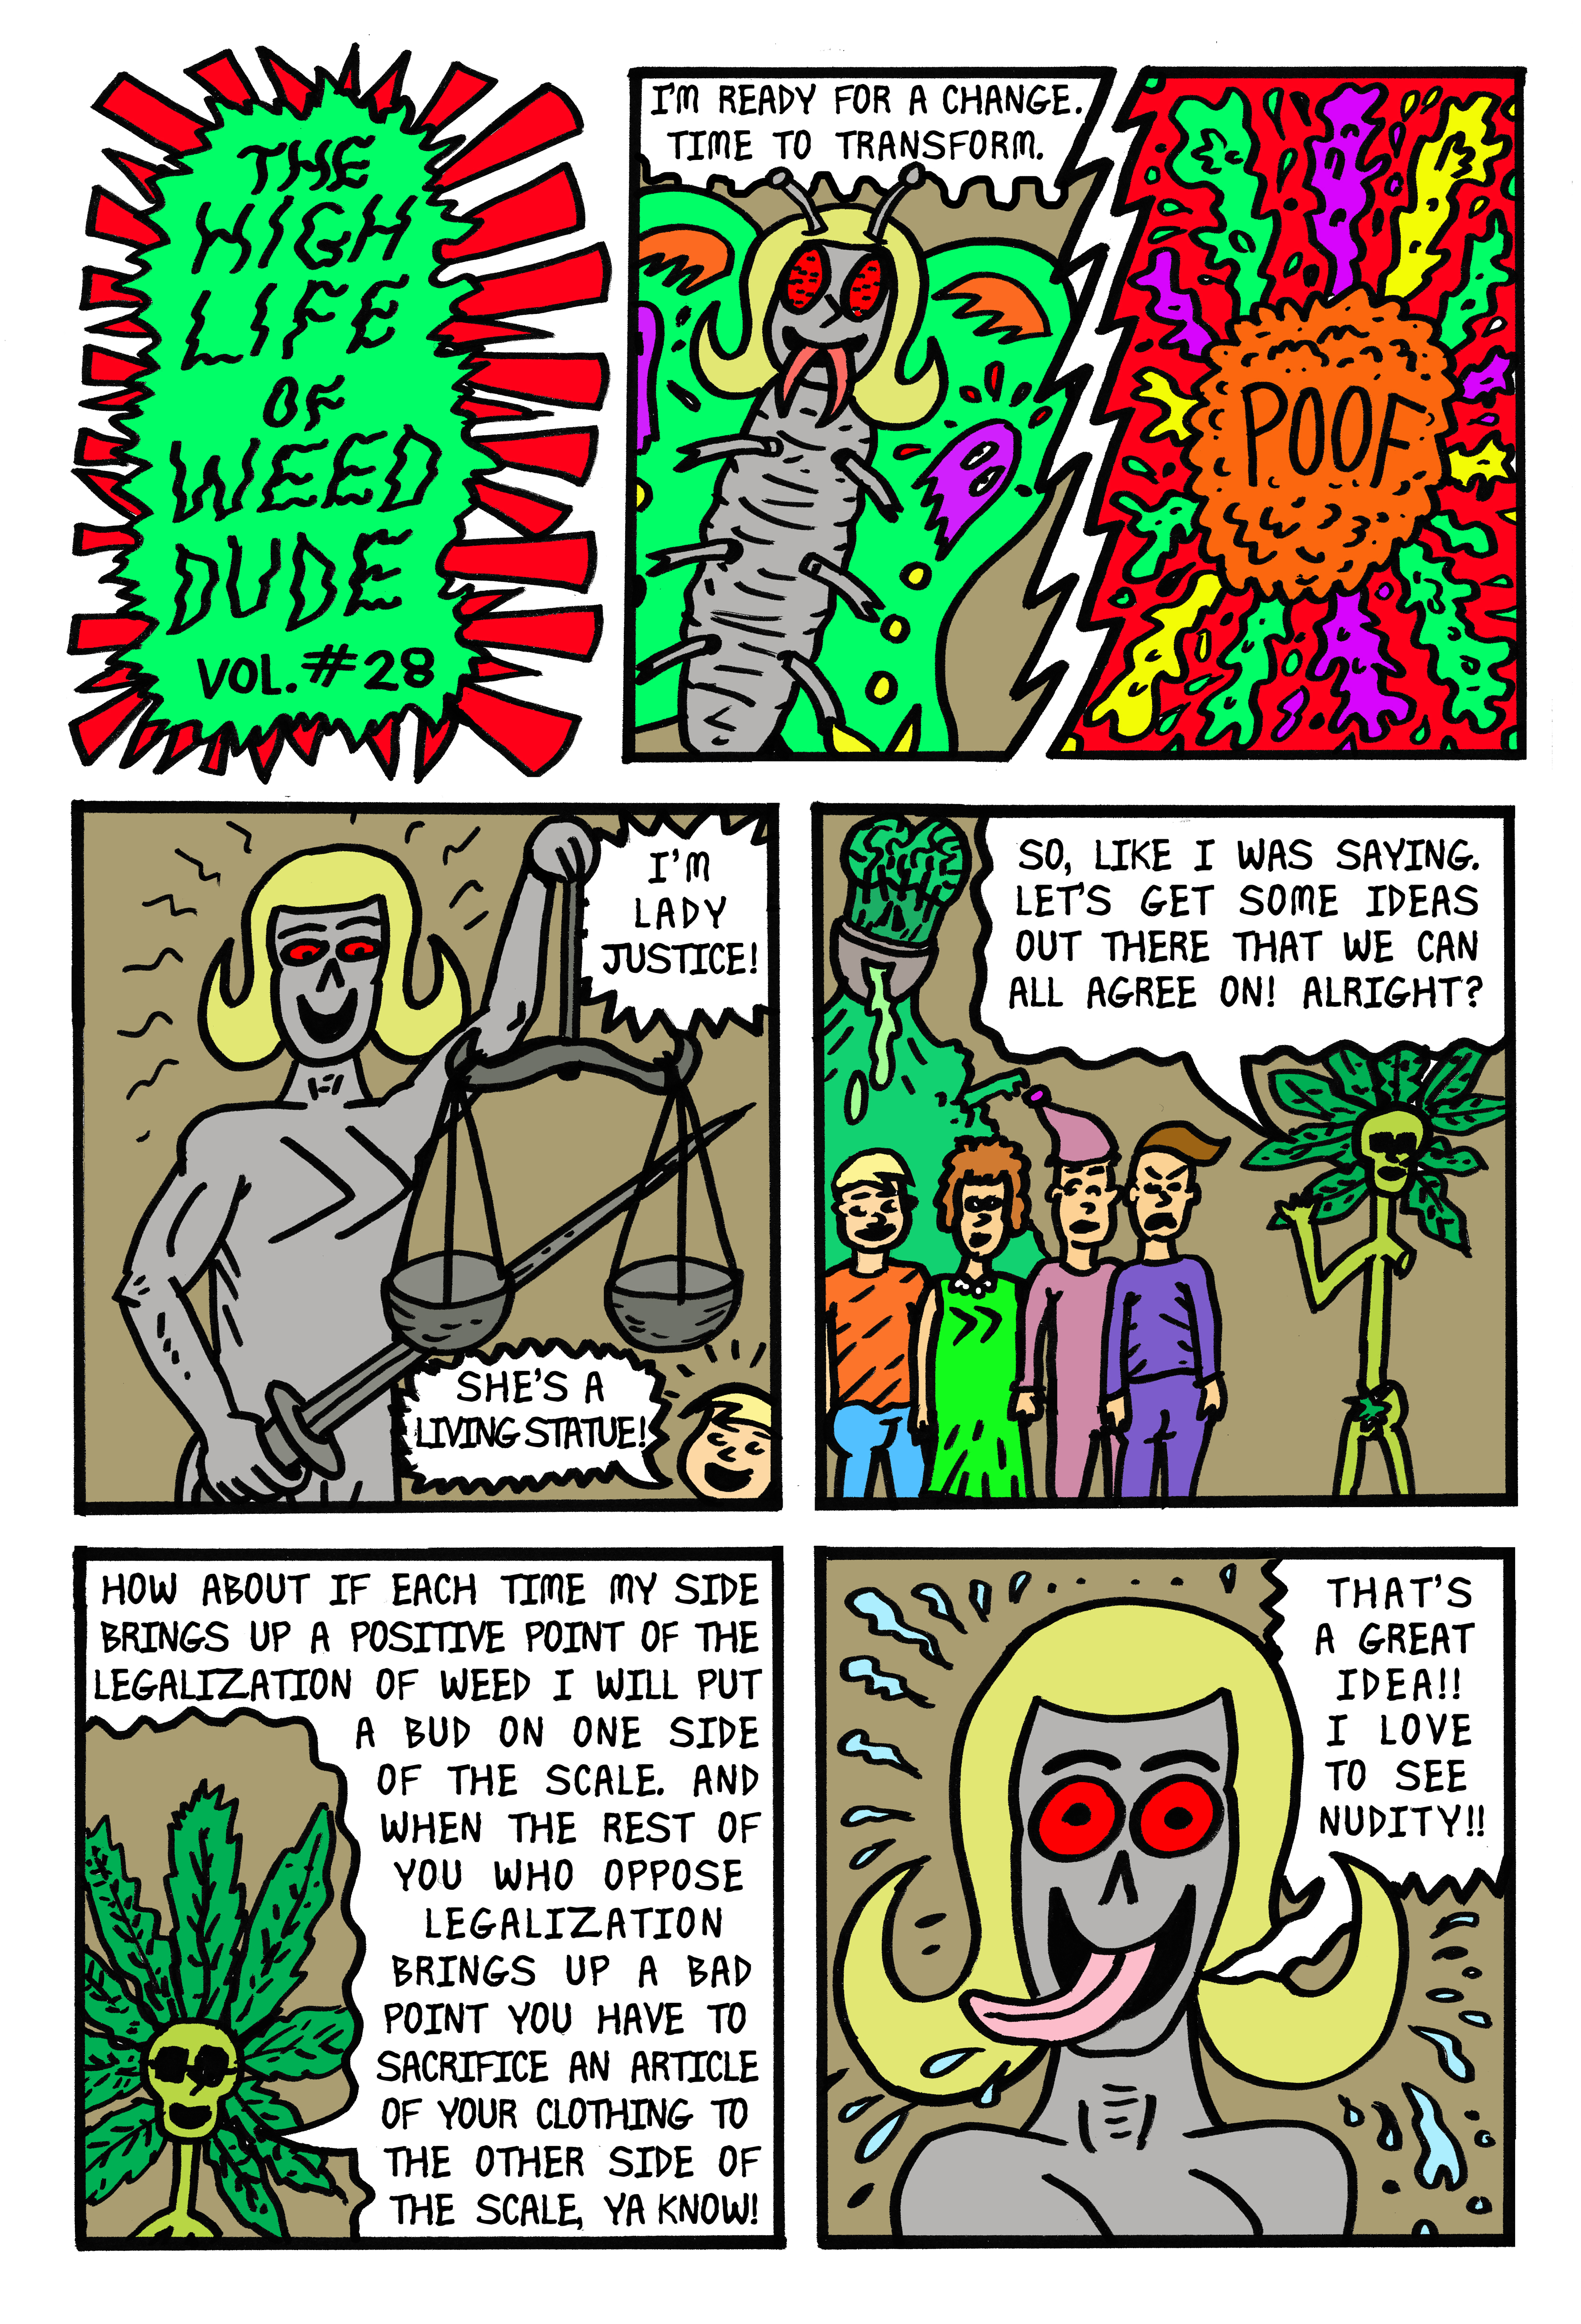 The High Life of Weed Dude Vol. 28: A Legalization Debate Turns Into Strip Poker